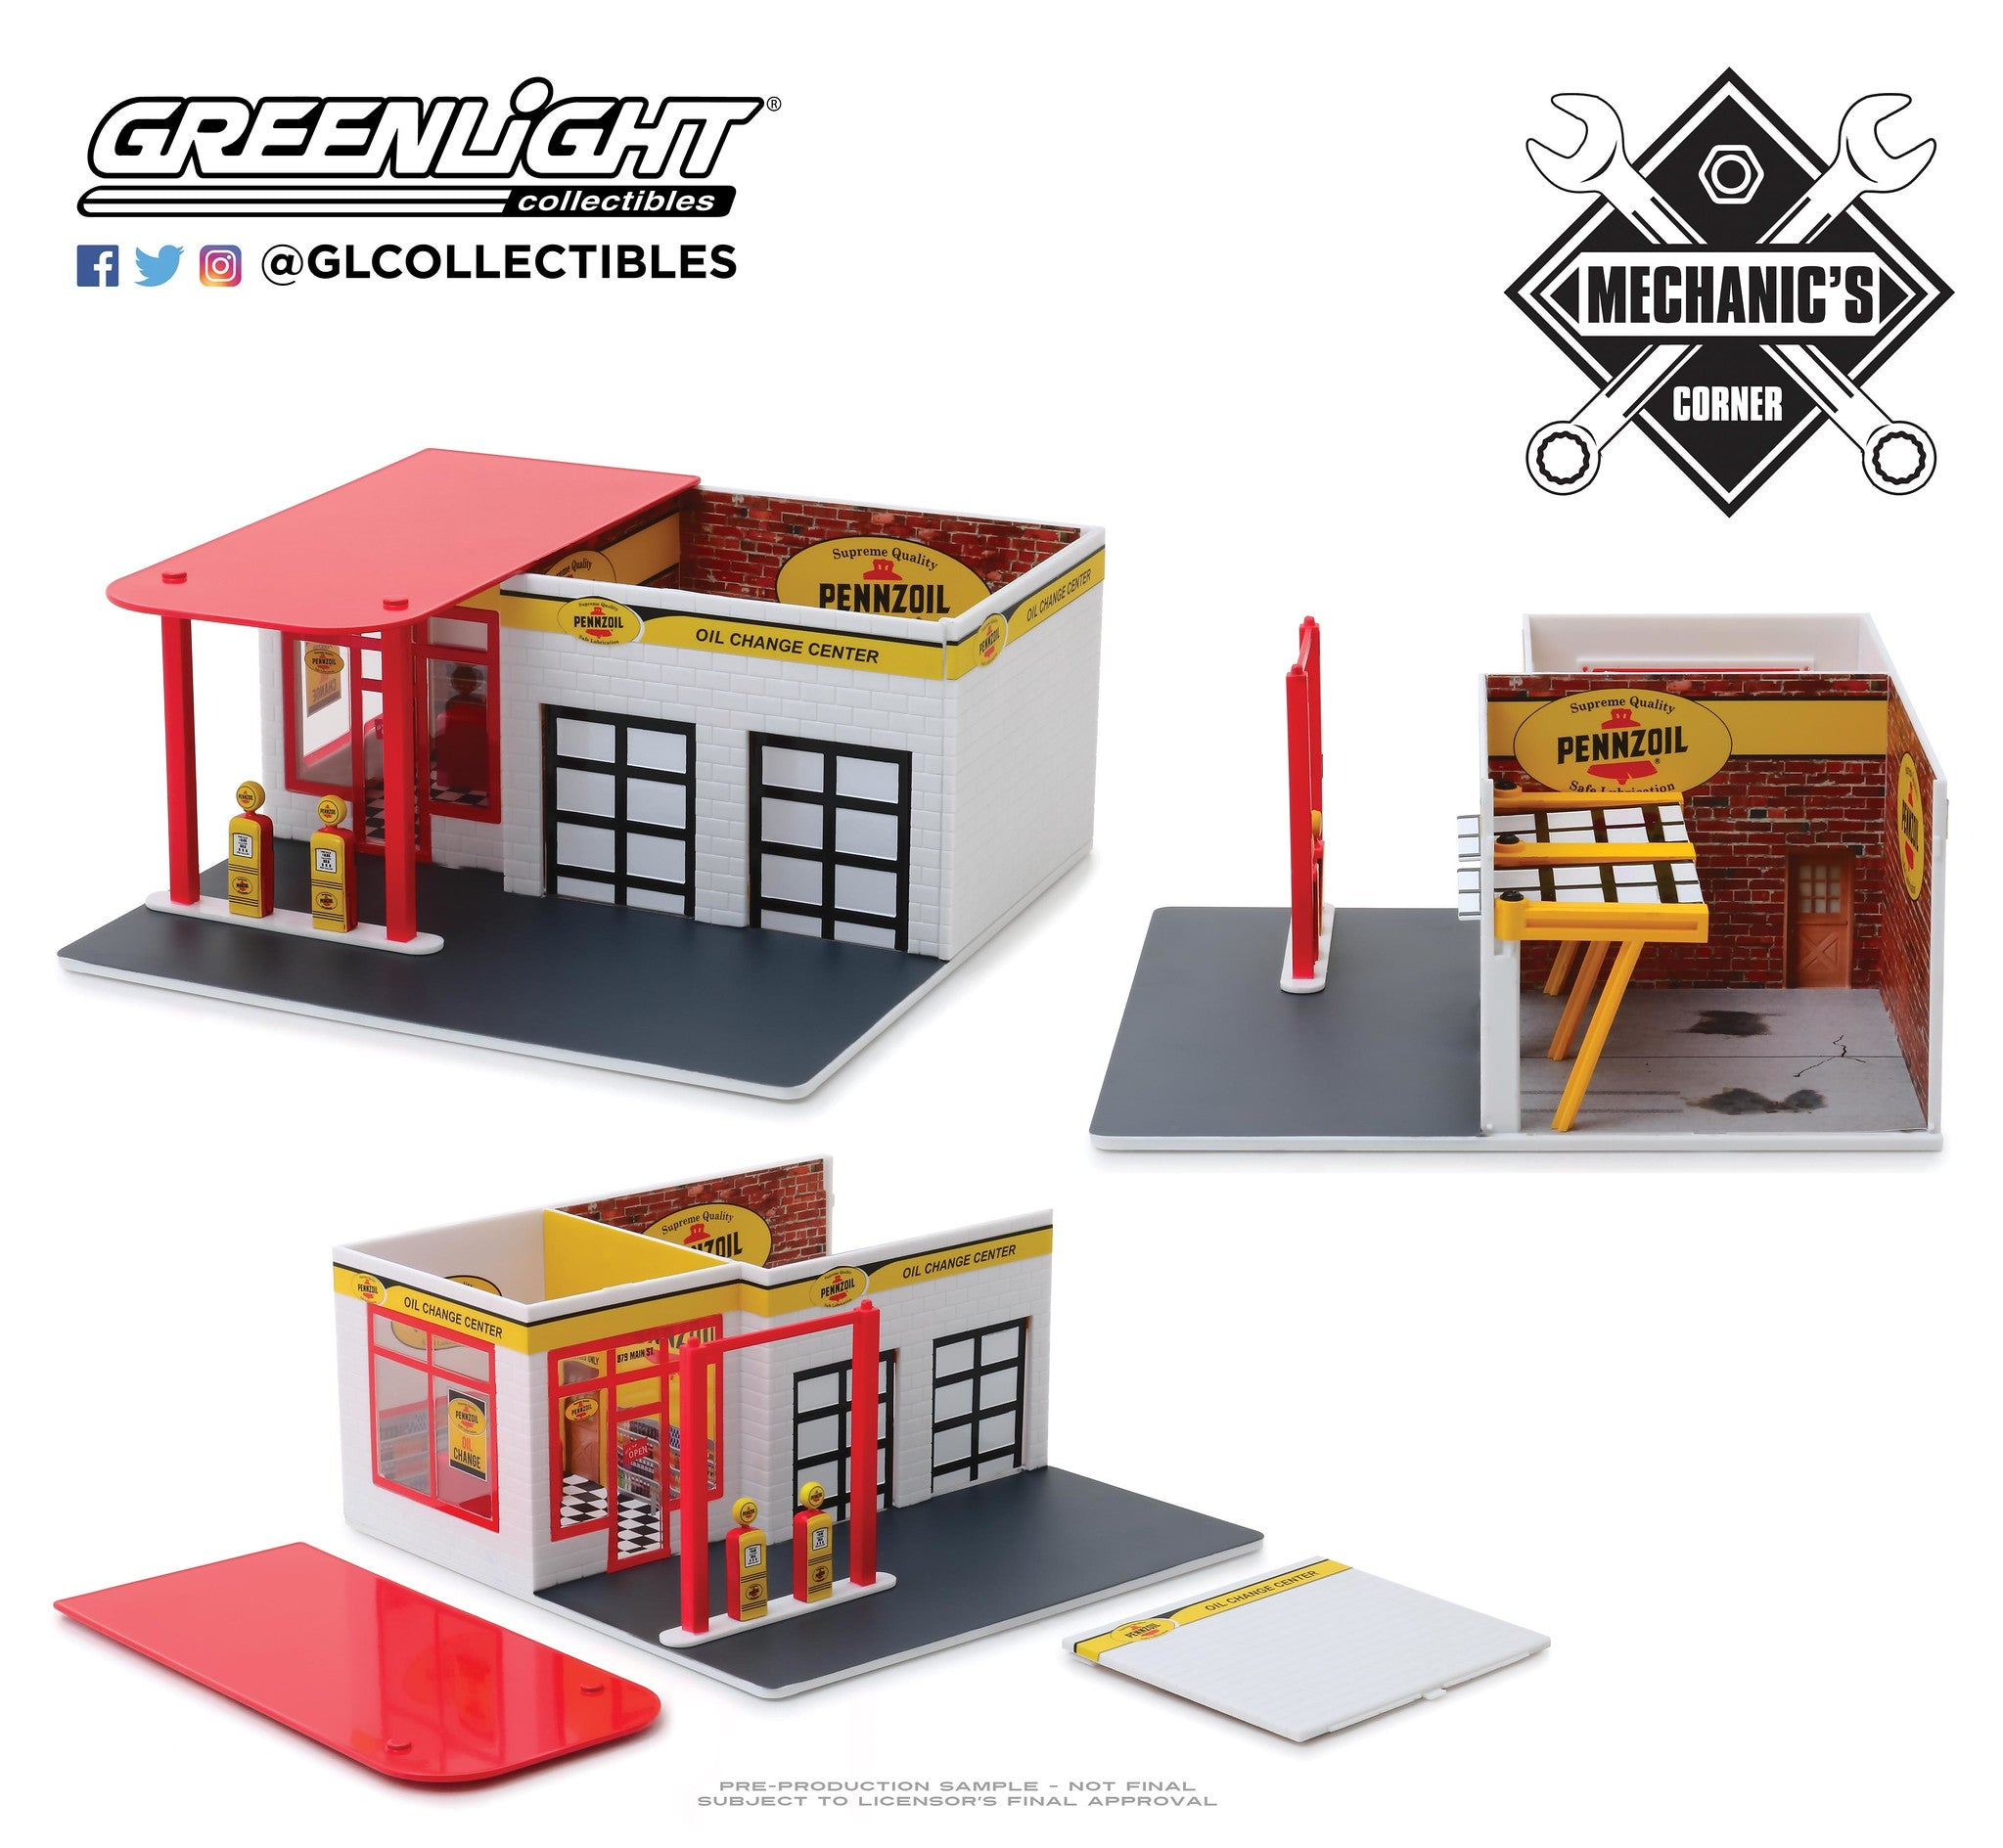 GreenLight 1/64 Mechanic's Corner Series 5 - Vintage Gas Station Pennzoil 10 Minute Oil Change Center 57052